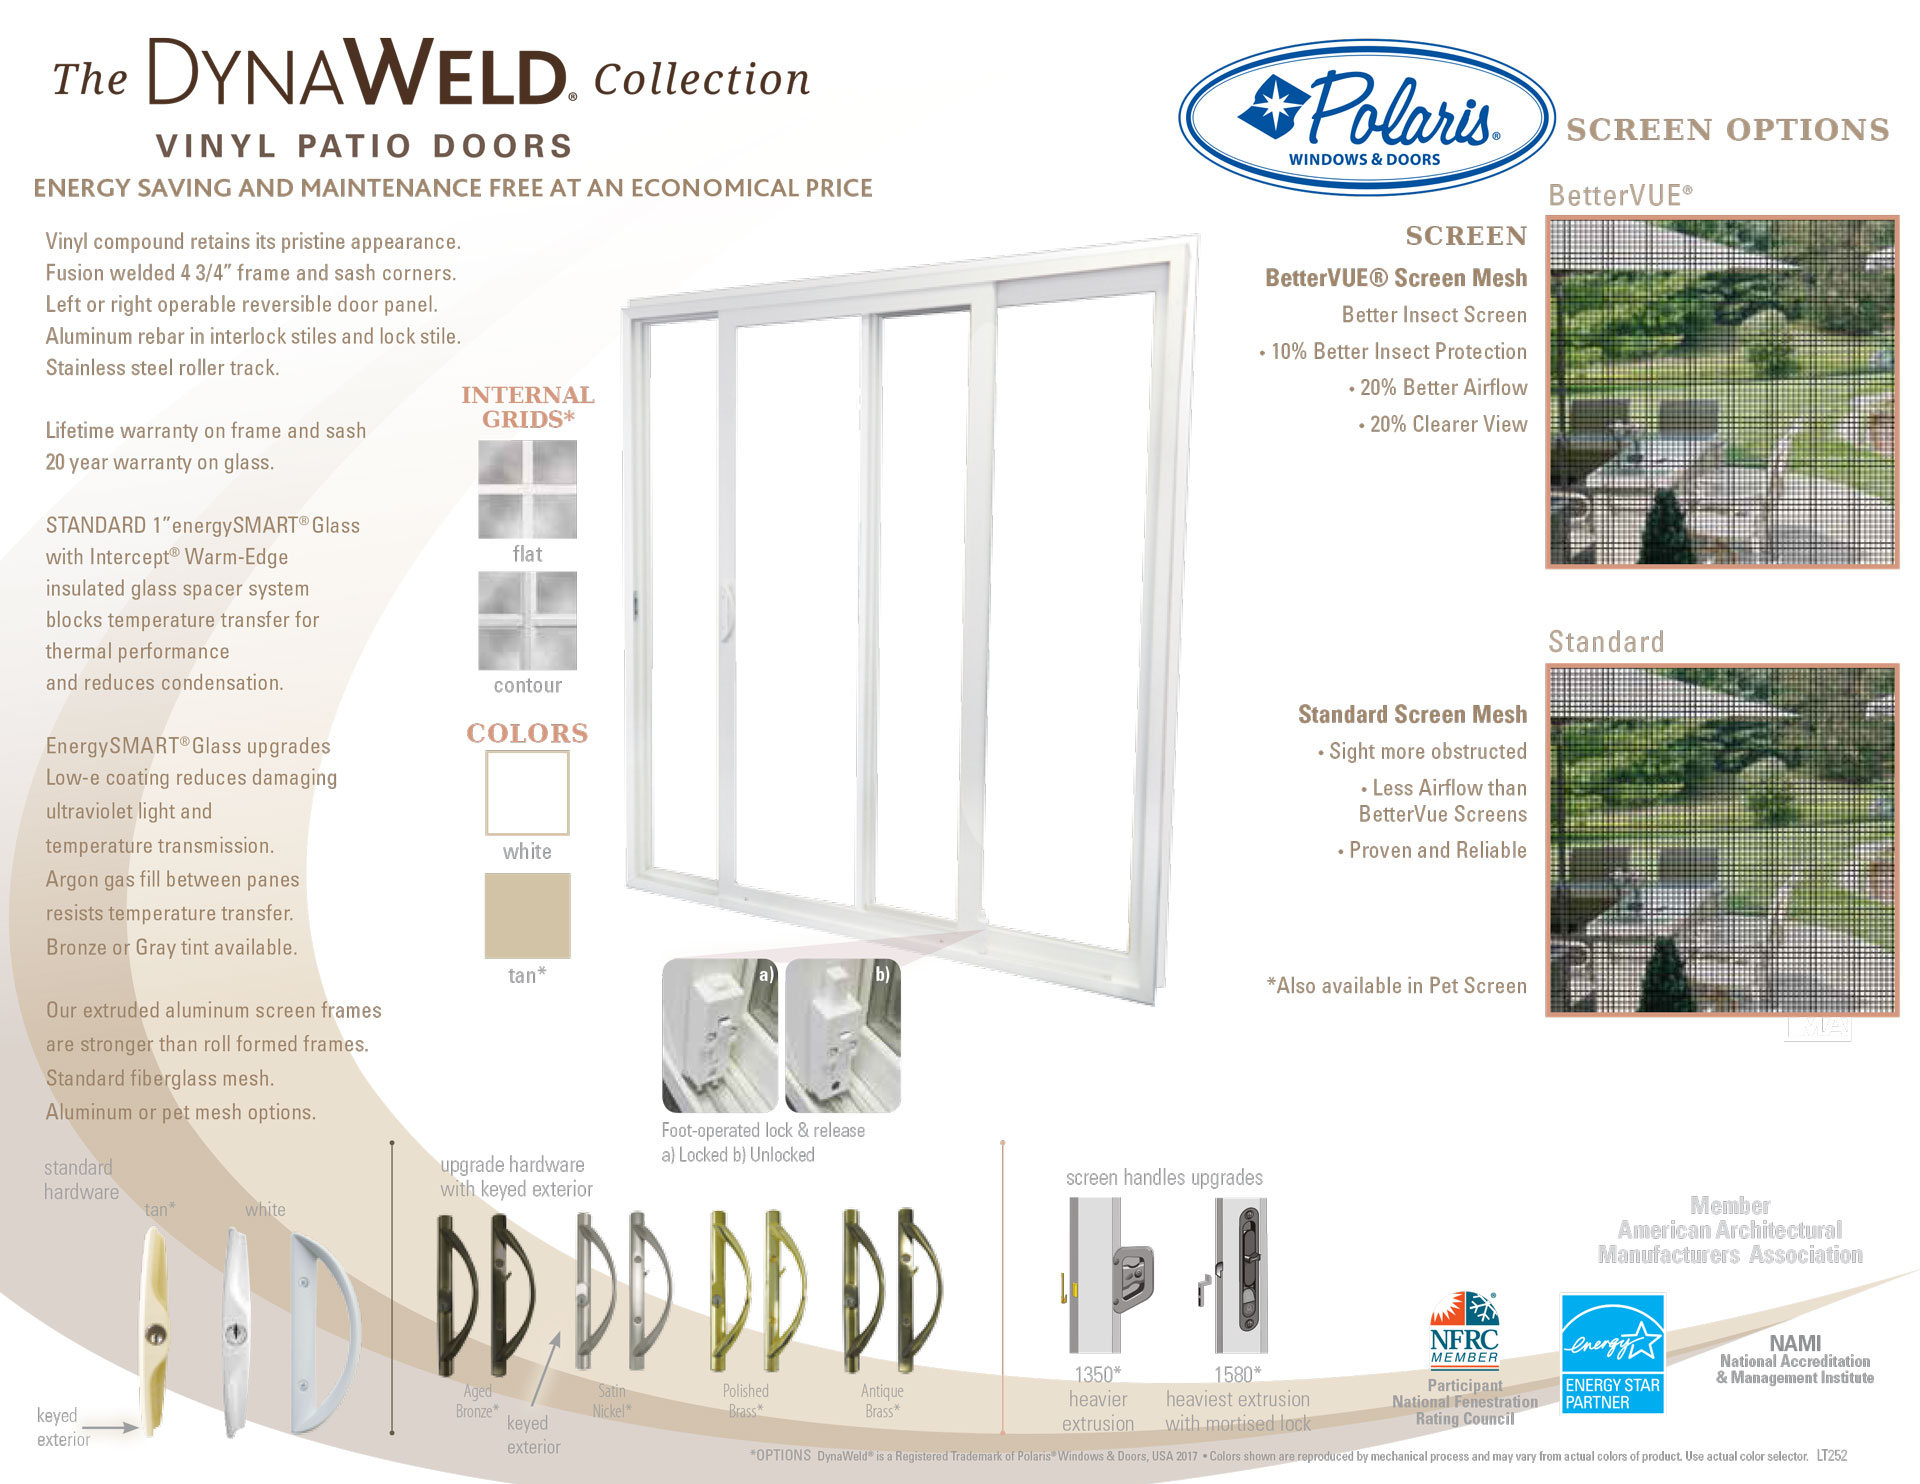 Polaris DynaWELD Patio Doors Brochure Off Duty Construction